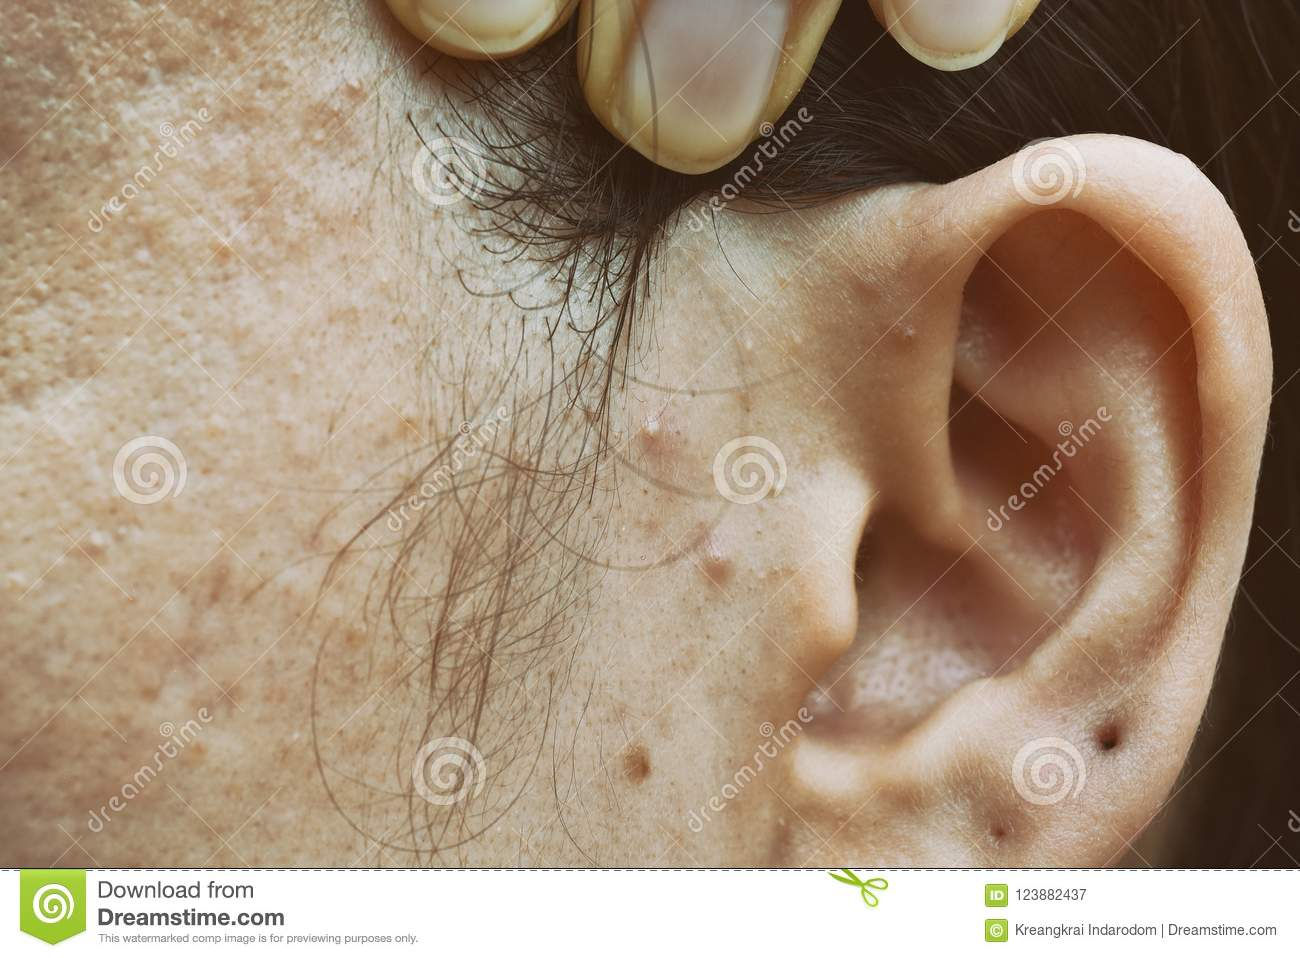 Skin problem with acne diseases, Close up woman face with whitehead pimples, Menstruation breakout.